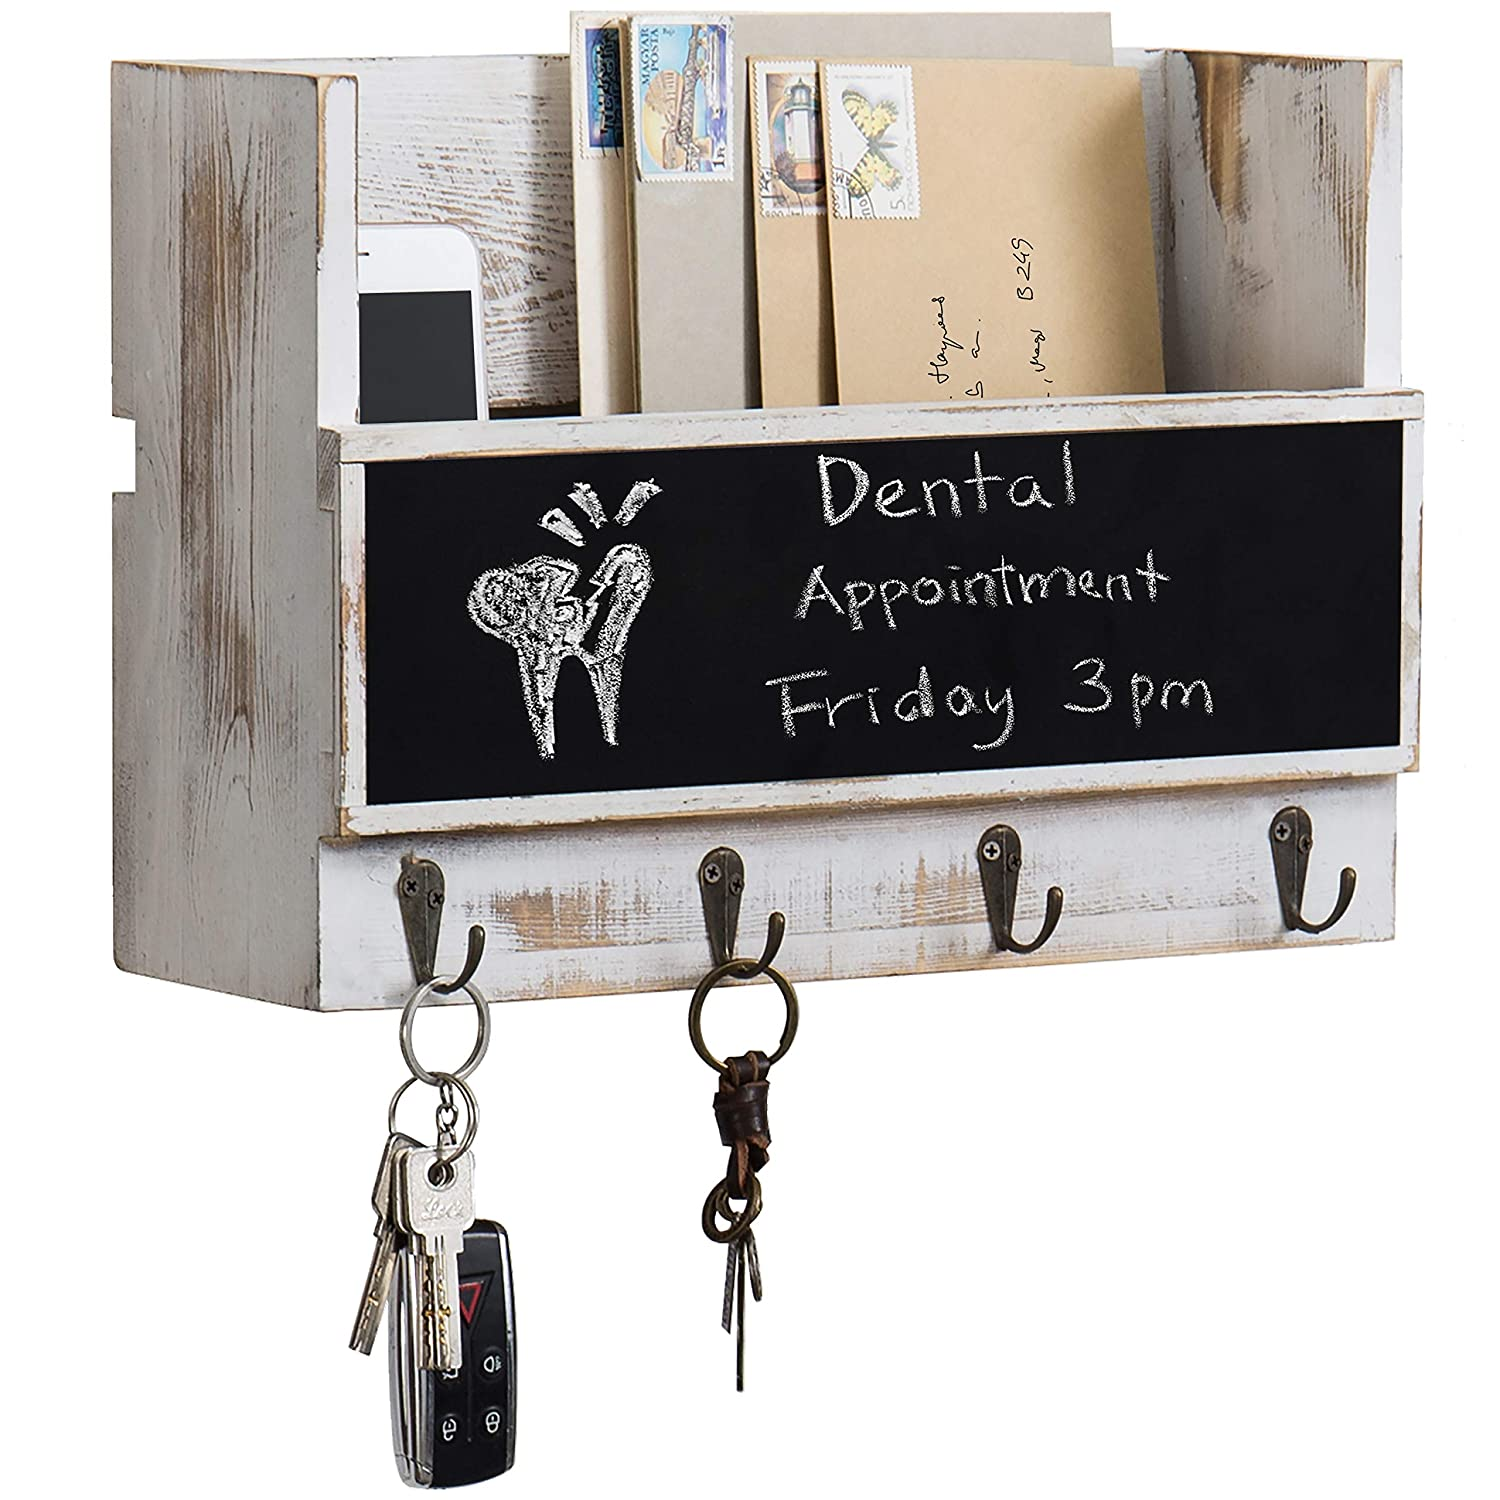 MyGift Whitewashed Wood Wall-Mounted Mail Holder with Chalkboard & Key Hooks